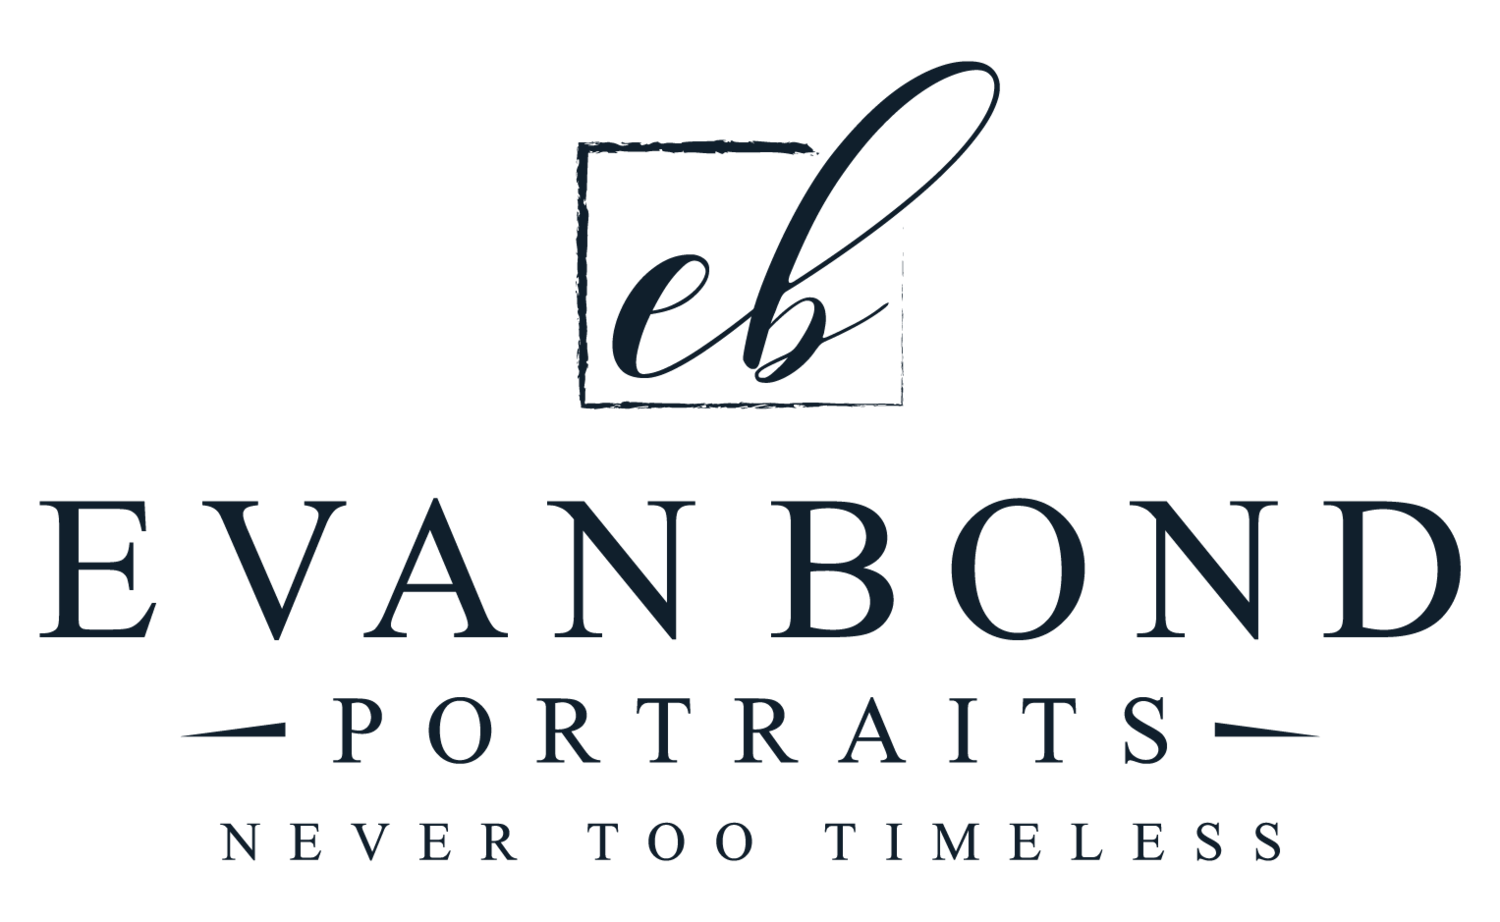 Evan Bond Portraits